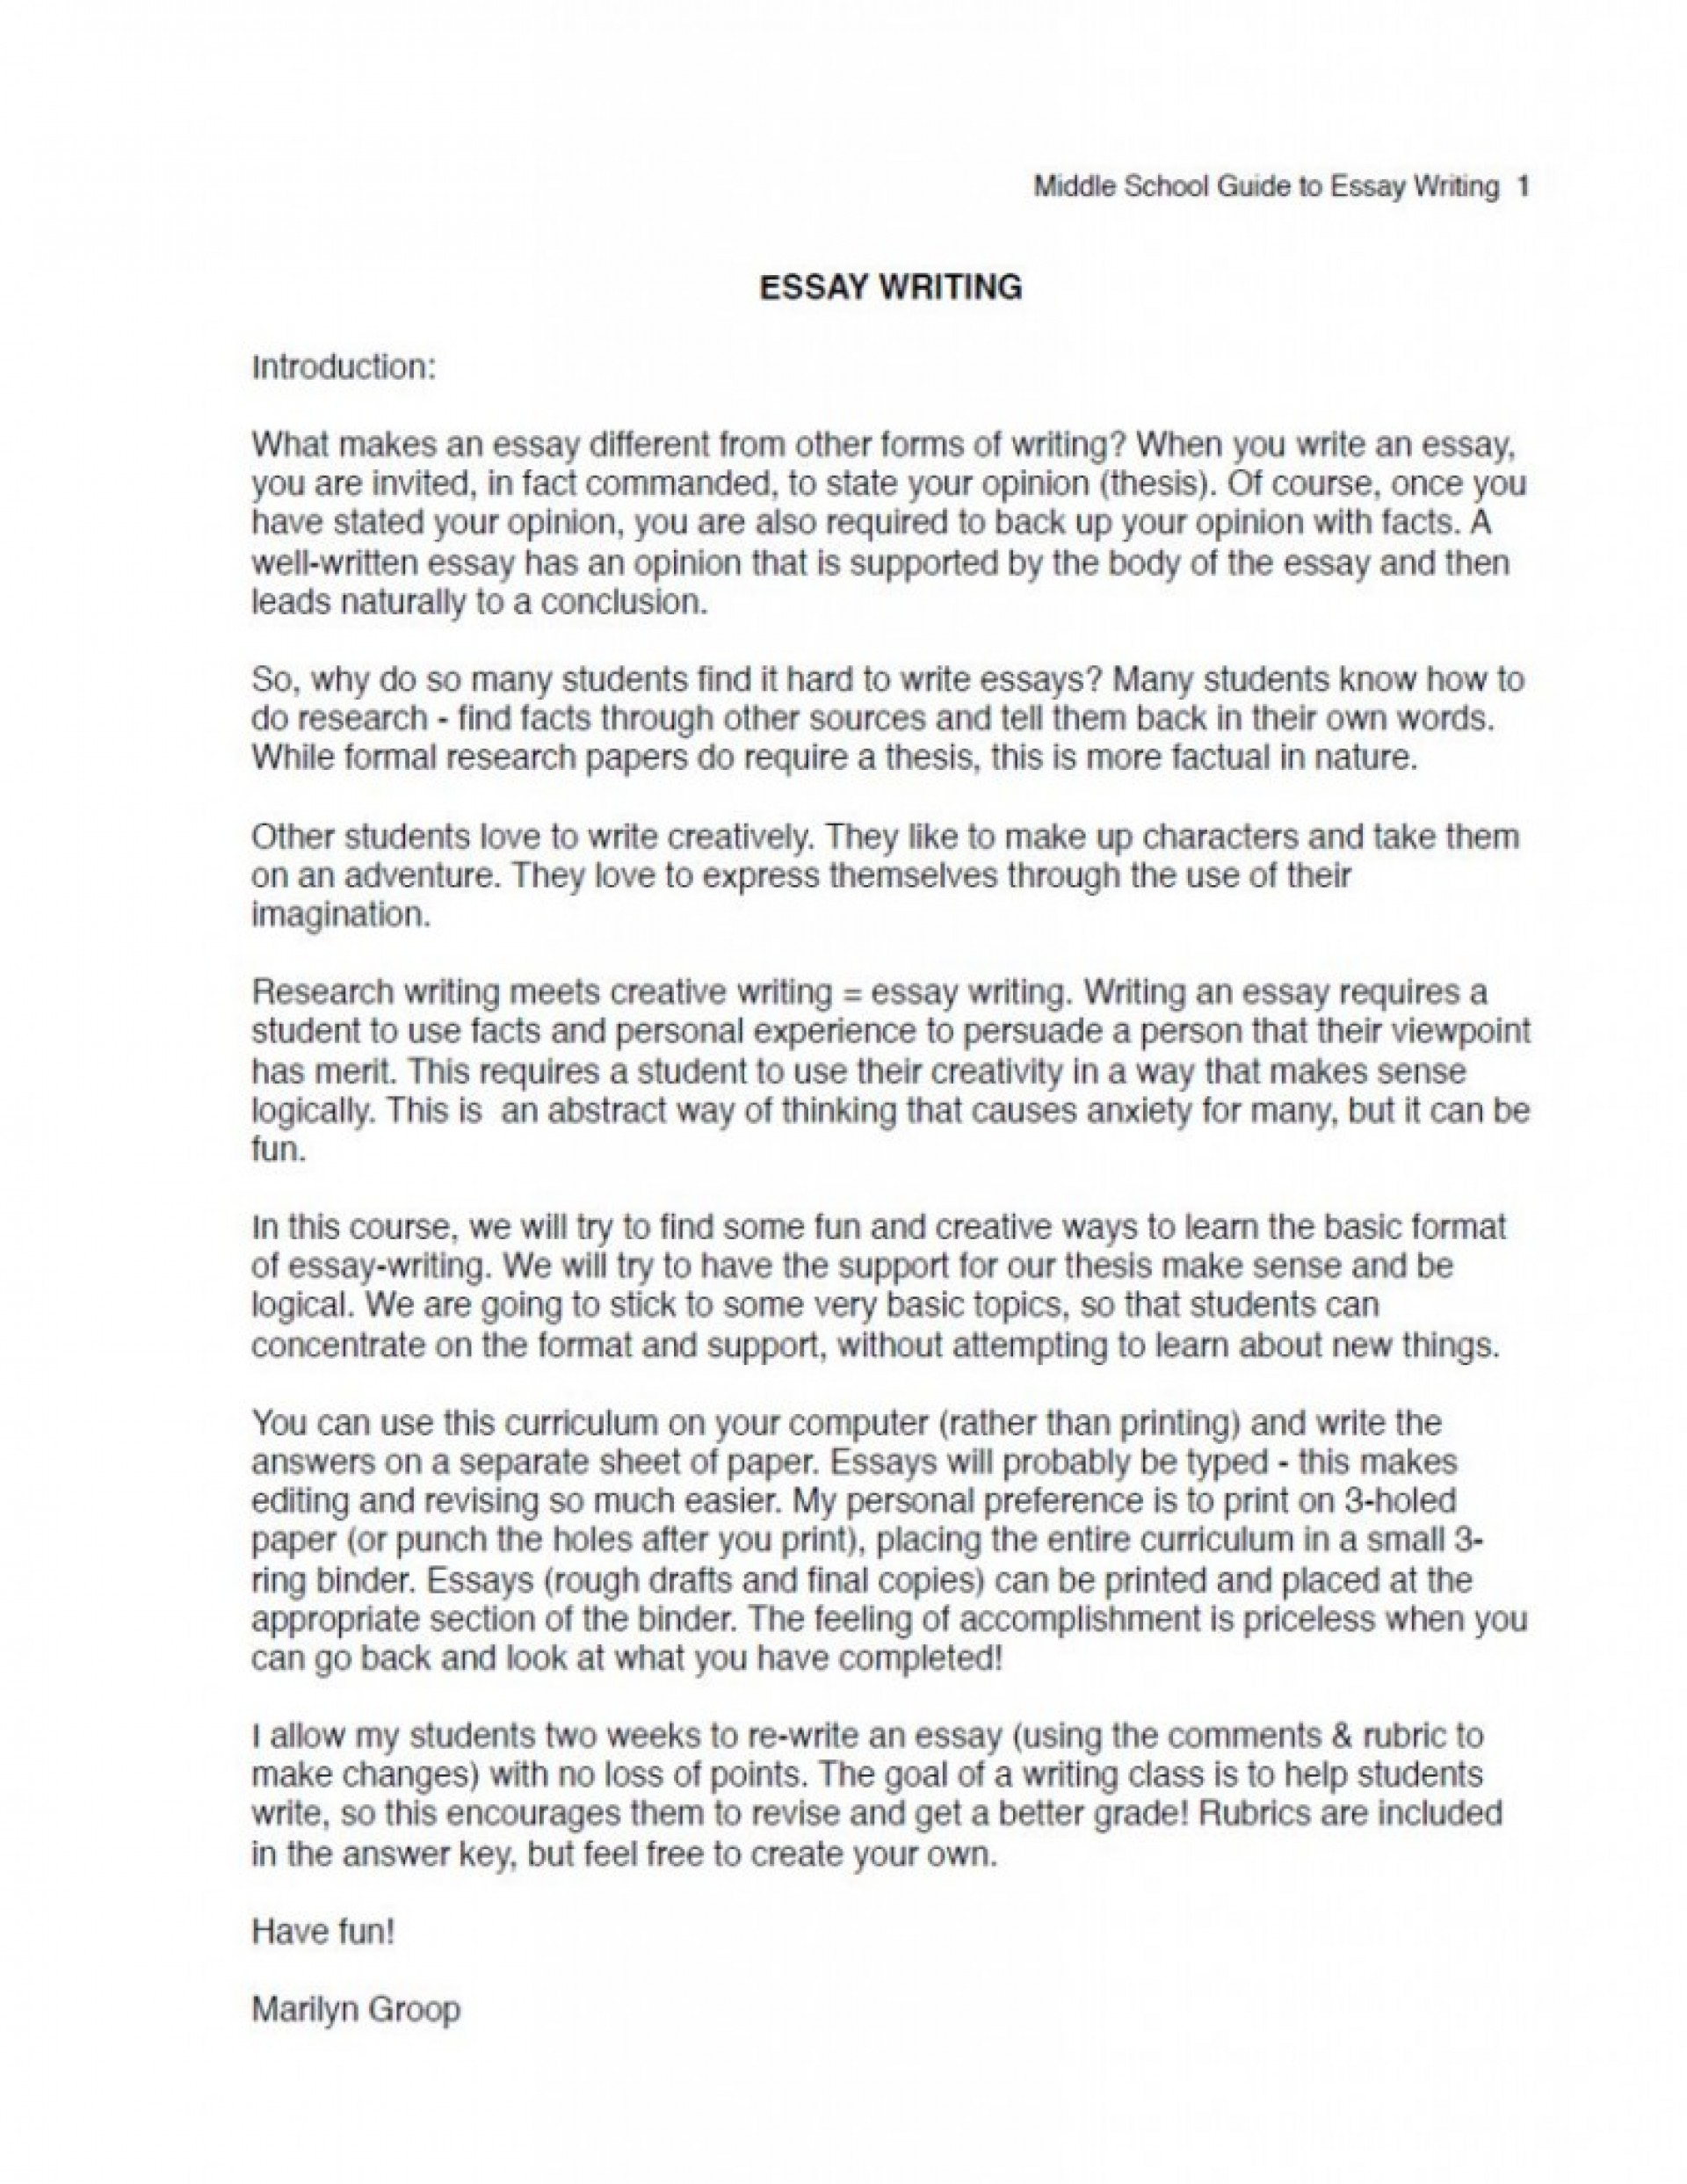 007 Essay Example Ms Excerpt 791x1024cb Compare And Contrast Cultures Stirring Topics 1920